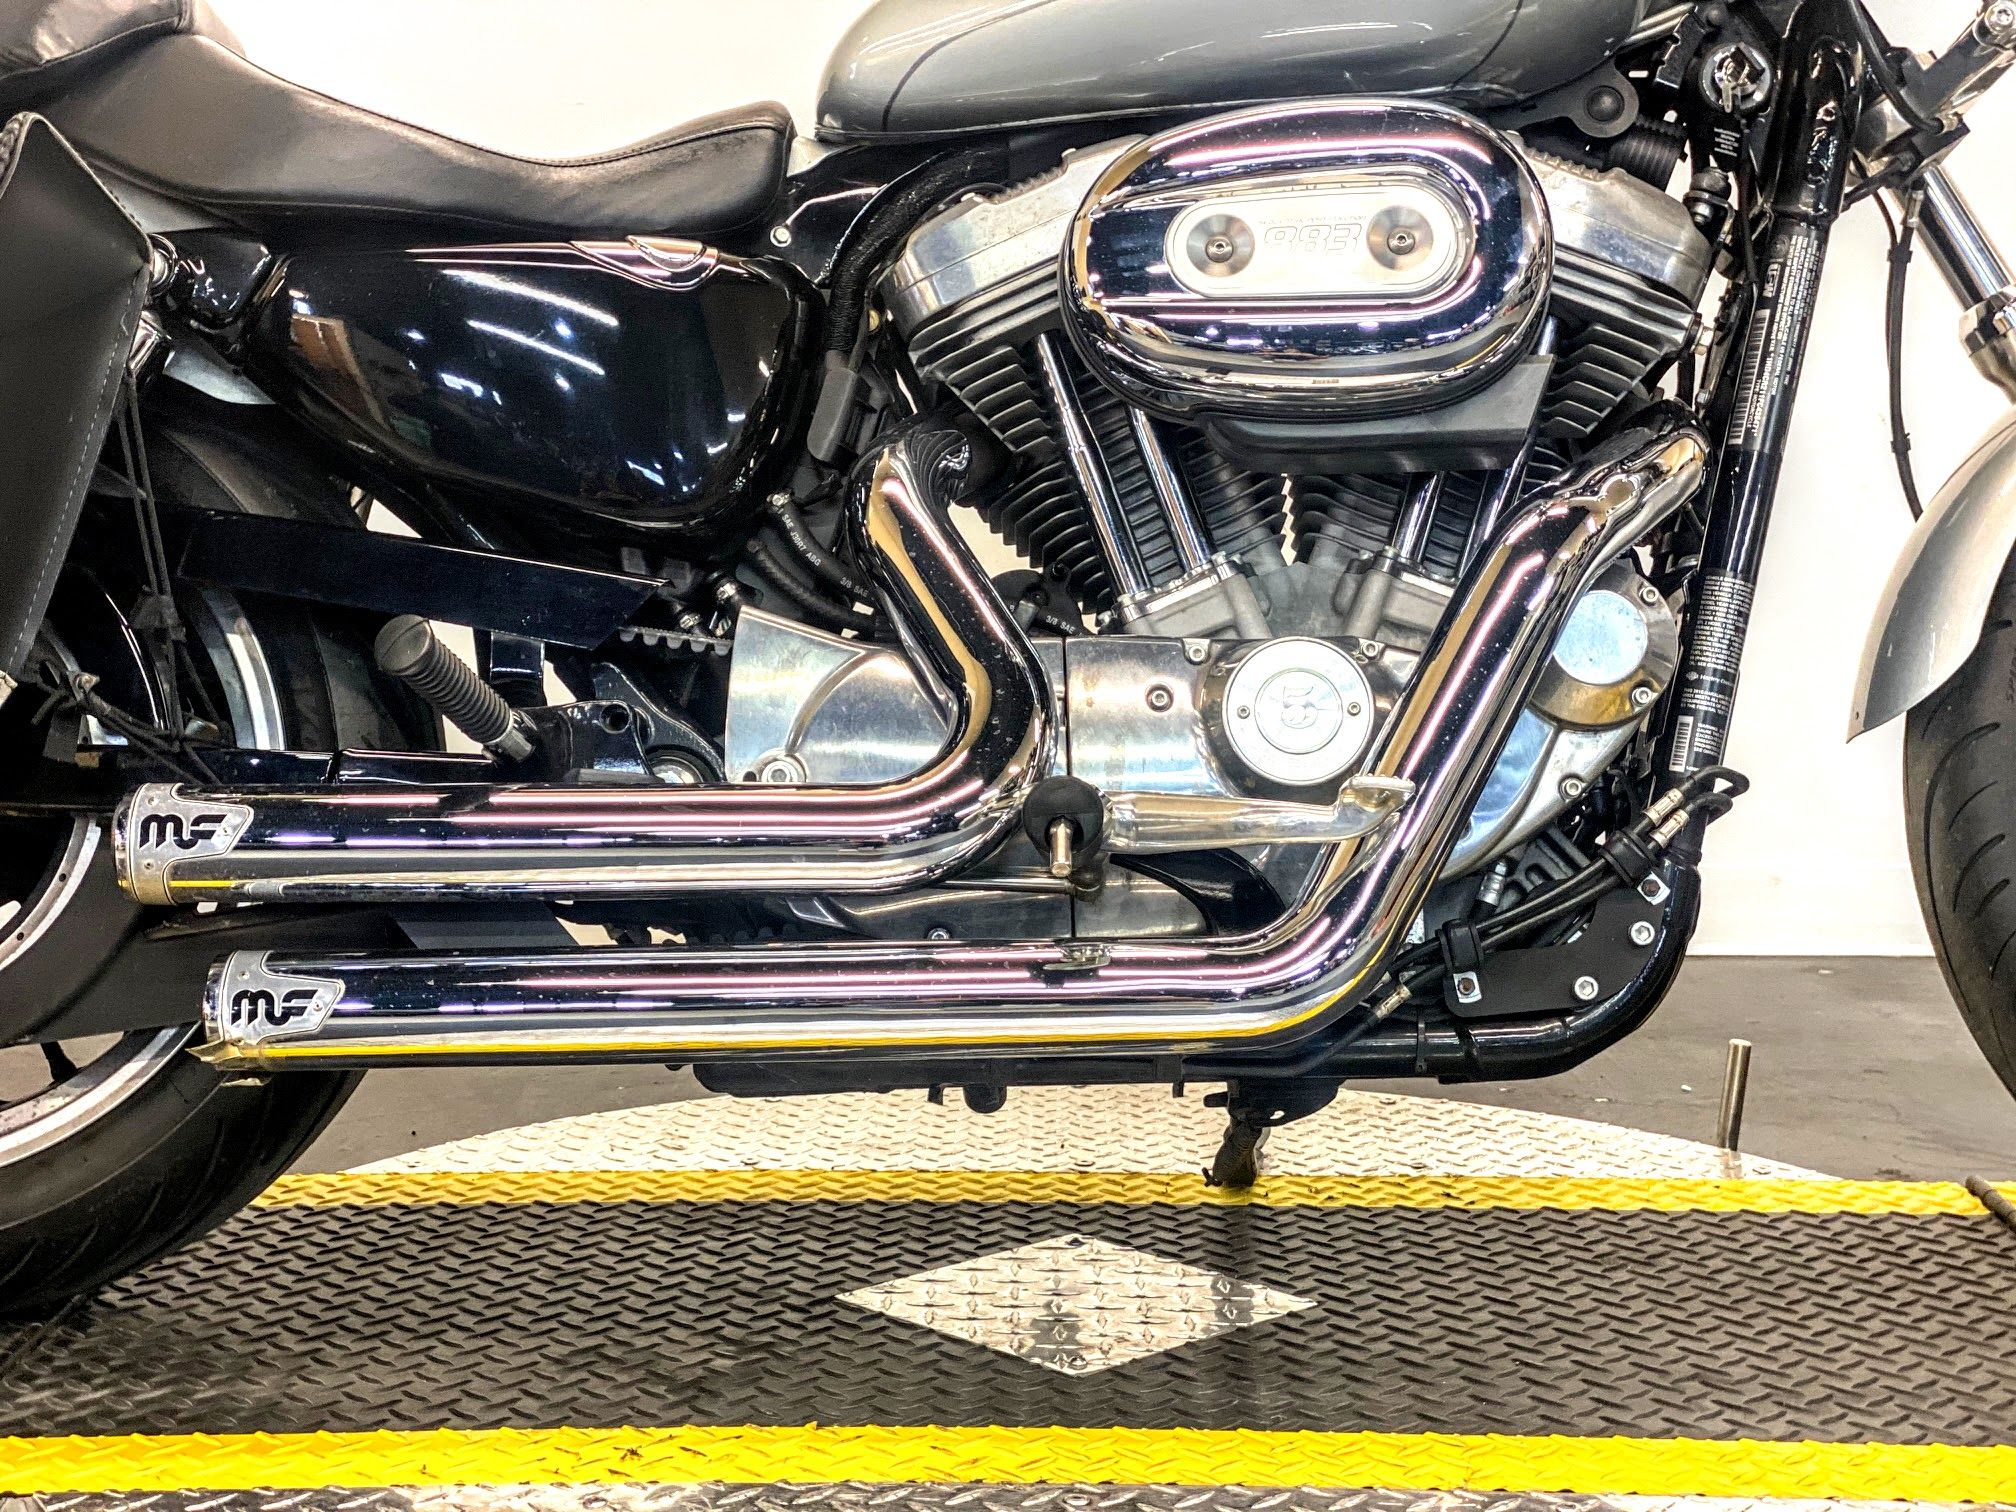 Pre-Owned 2015 Harley-Davidson SuperLow XL883L